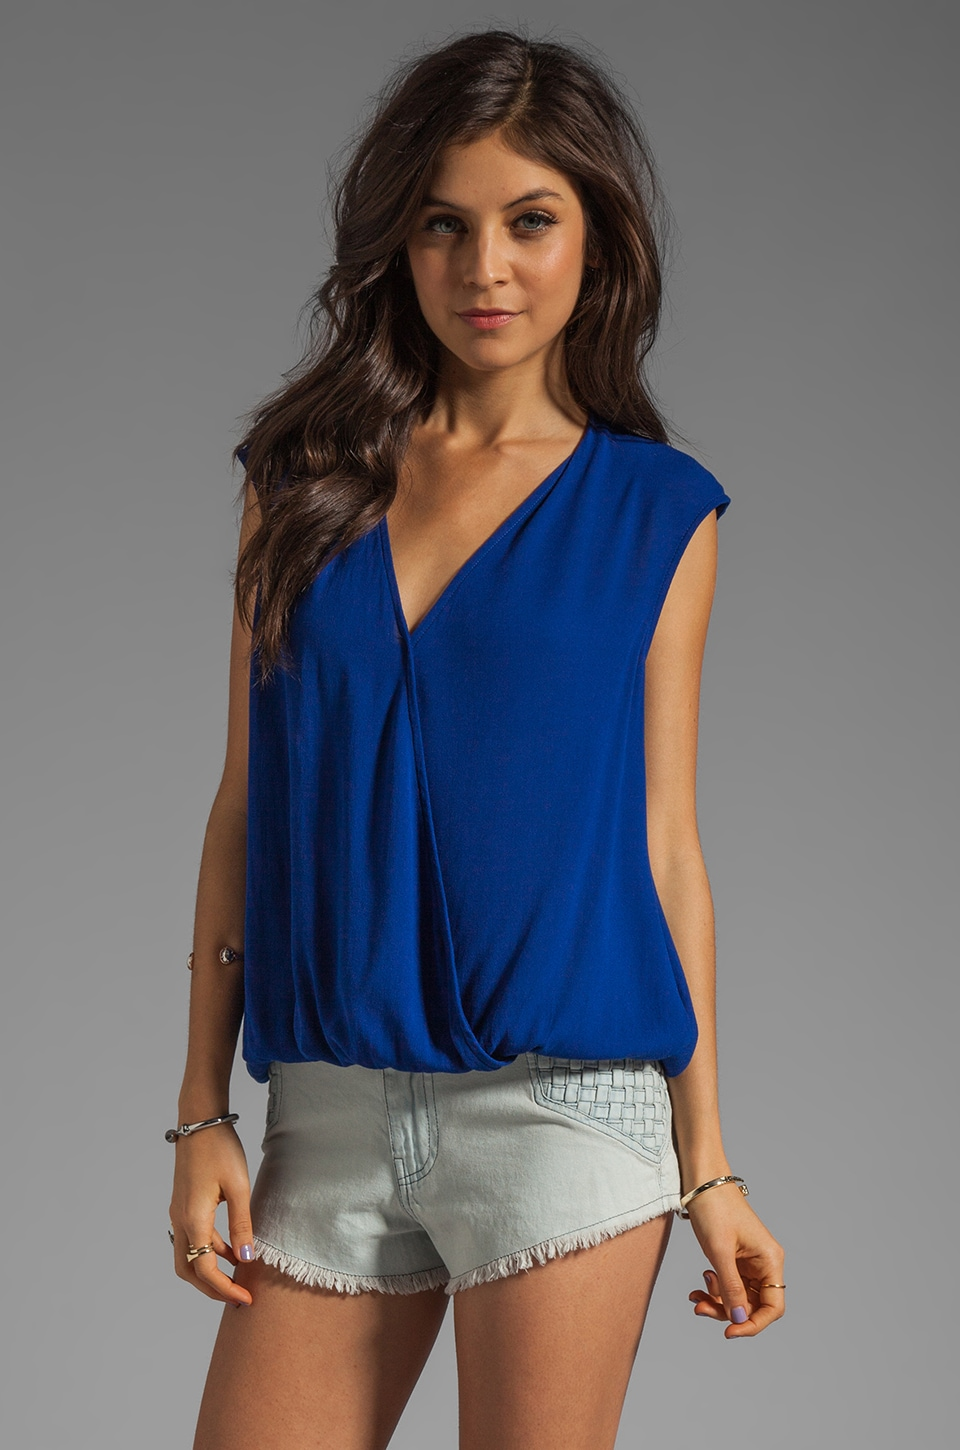 Ella Moss Stella Wrap Top in Royal